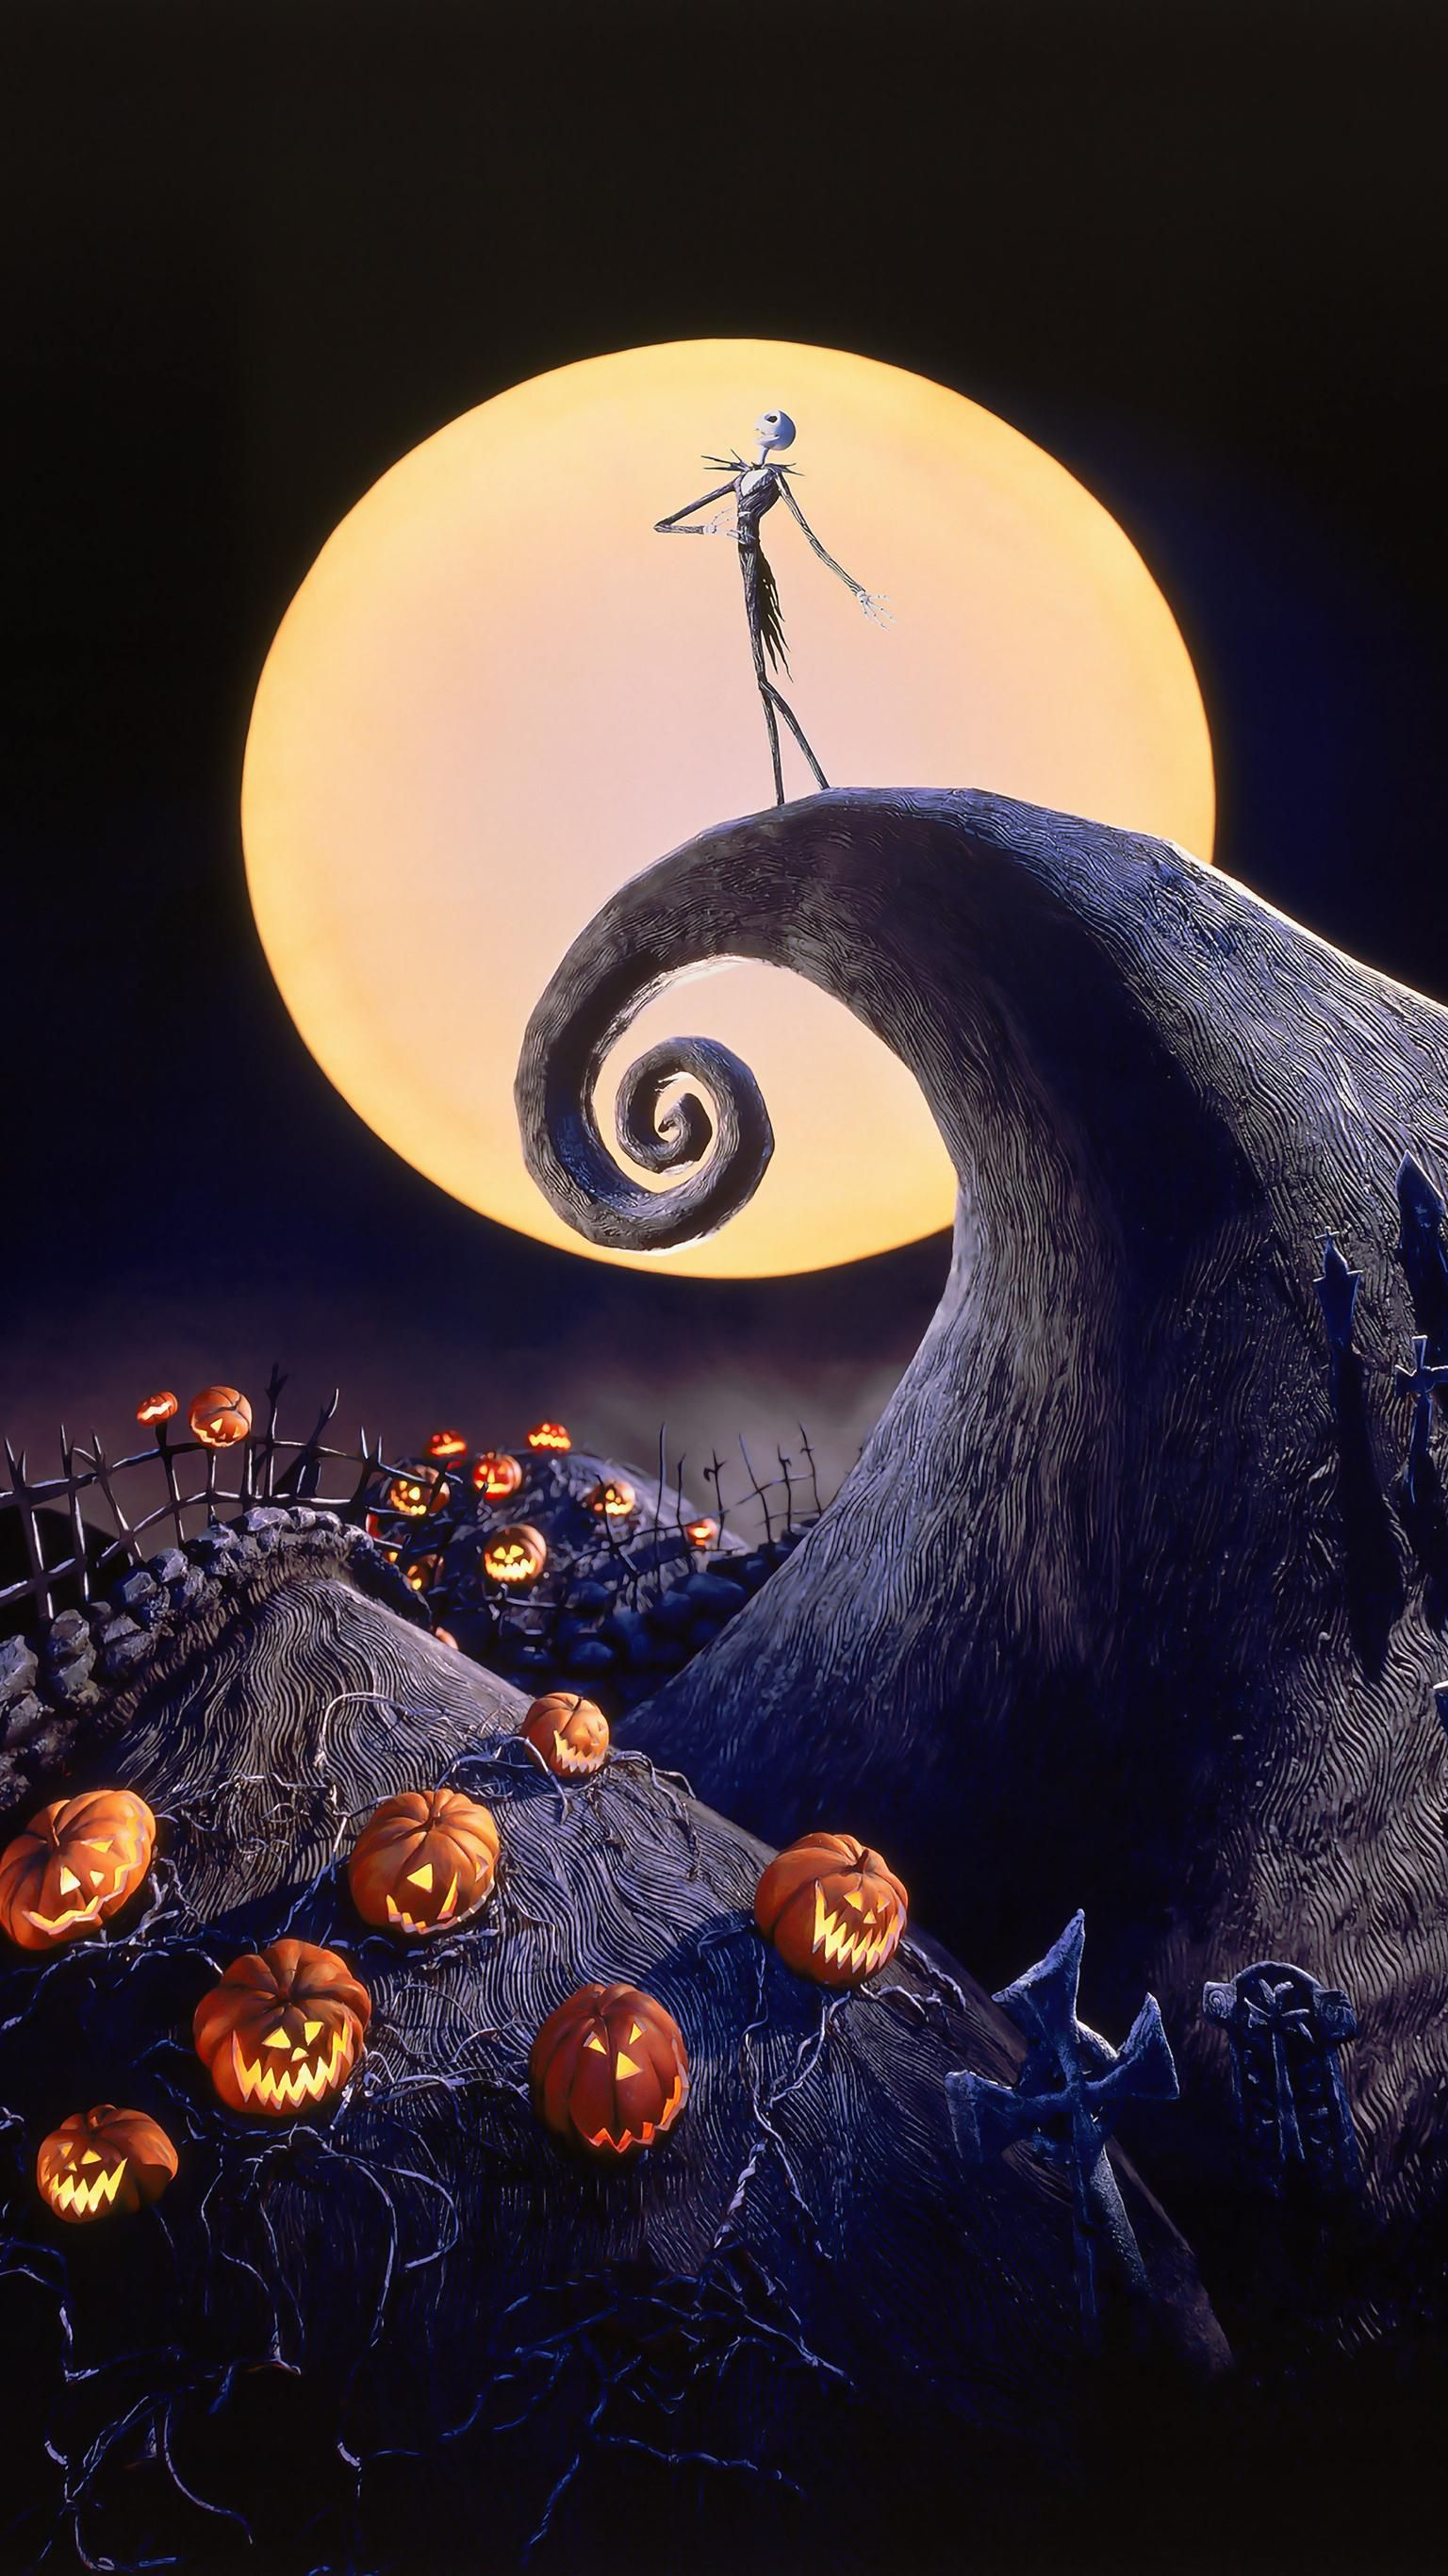 The Nightmare Before Christmas 1993 Phone Wallpaper Moviemania Nightmare Before Christmas Wallpaper Halloween Wallpaper Iphone Halloween Wallpaper